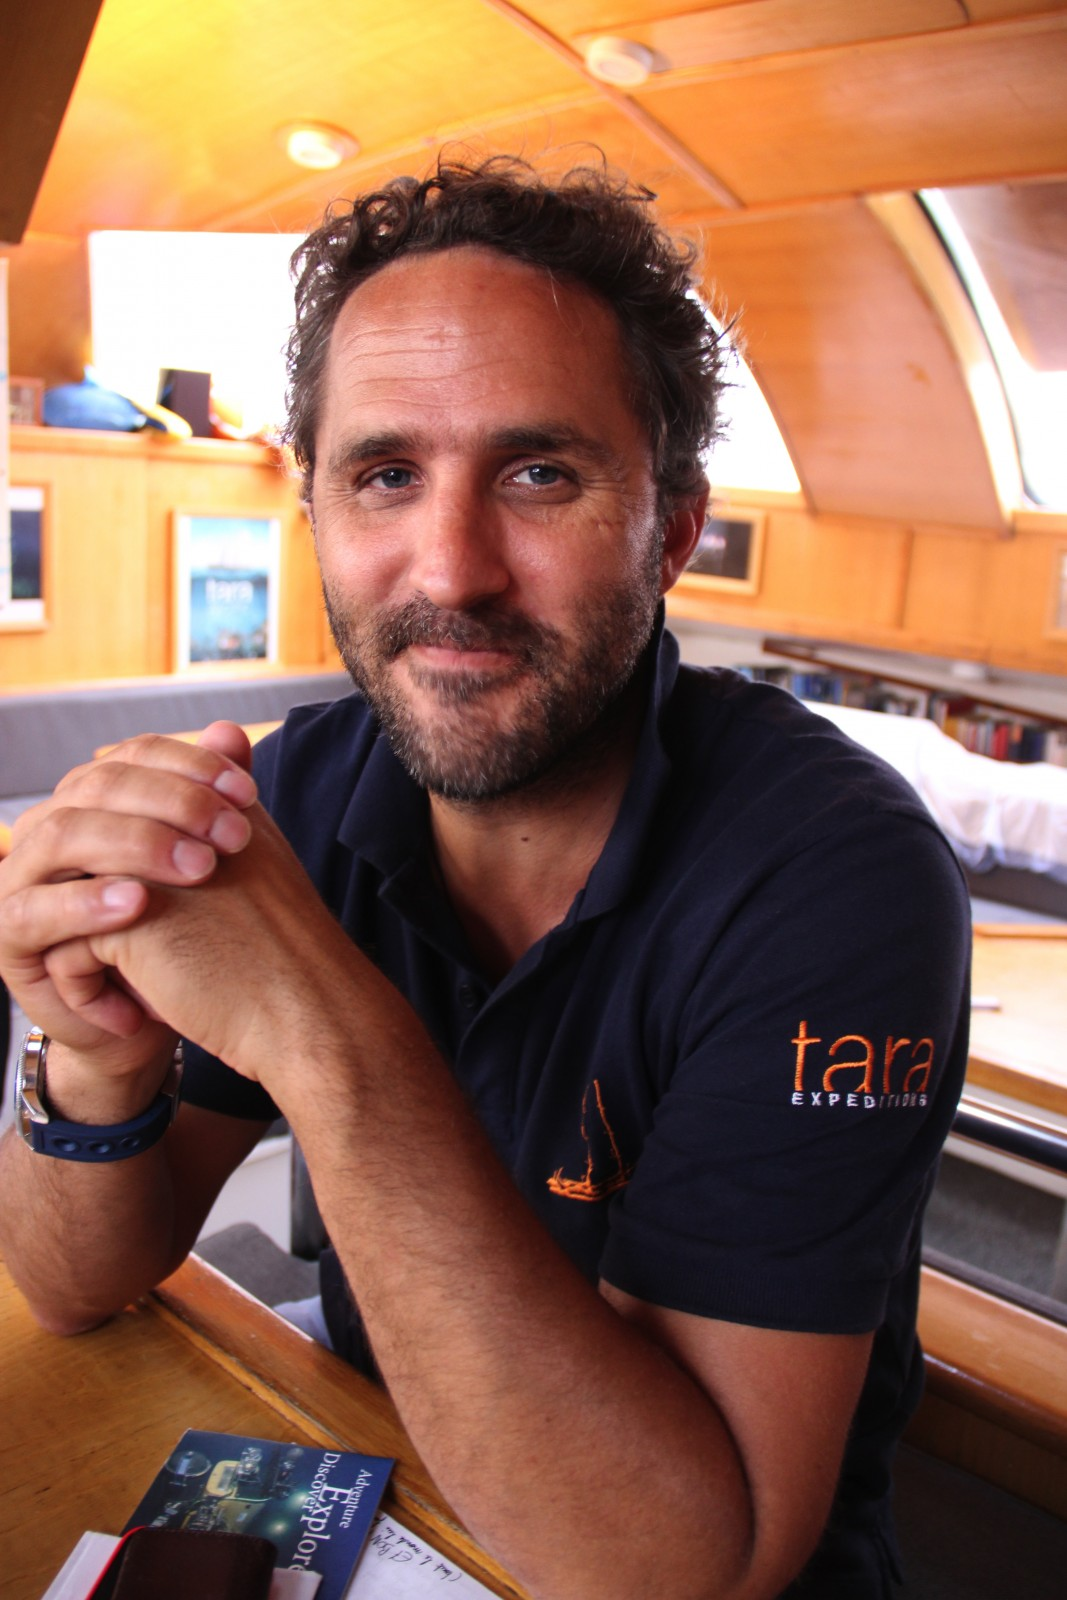 Tara Expeditions Foundation Managing Director Romain Trouble is a molecular biologist who has sailed America's Cup twice. PHOTO BY SUZETTE COOK